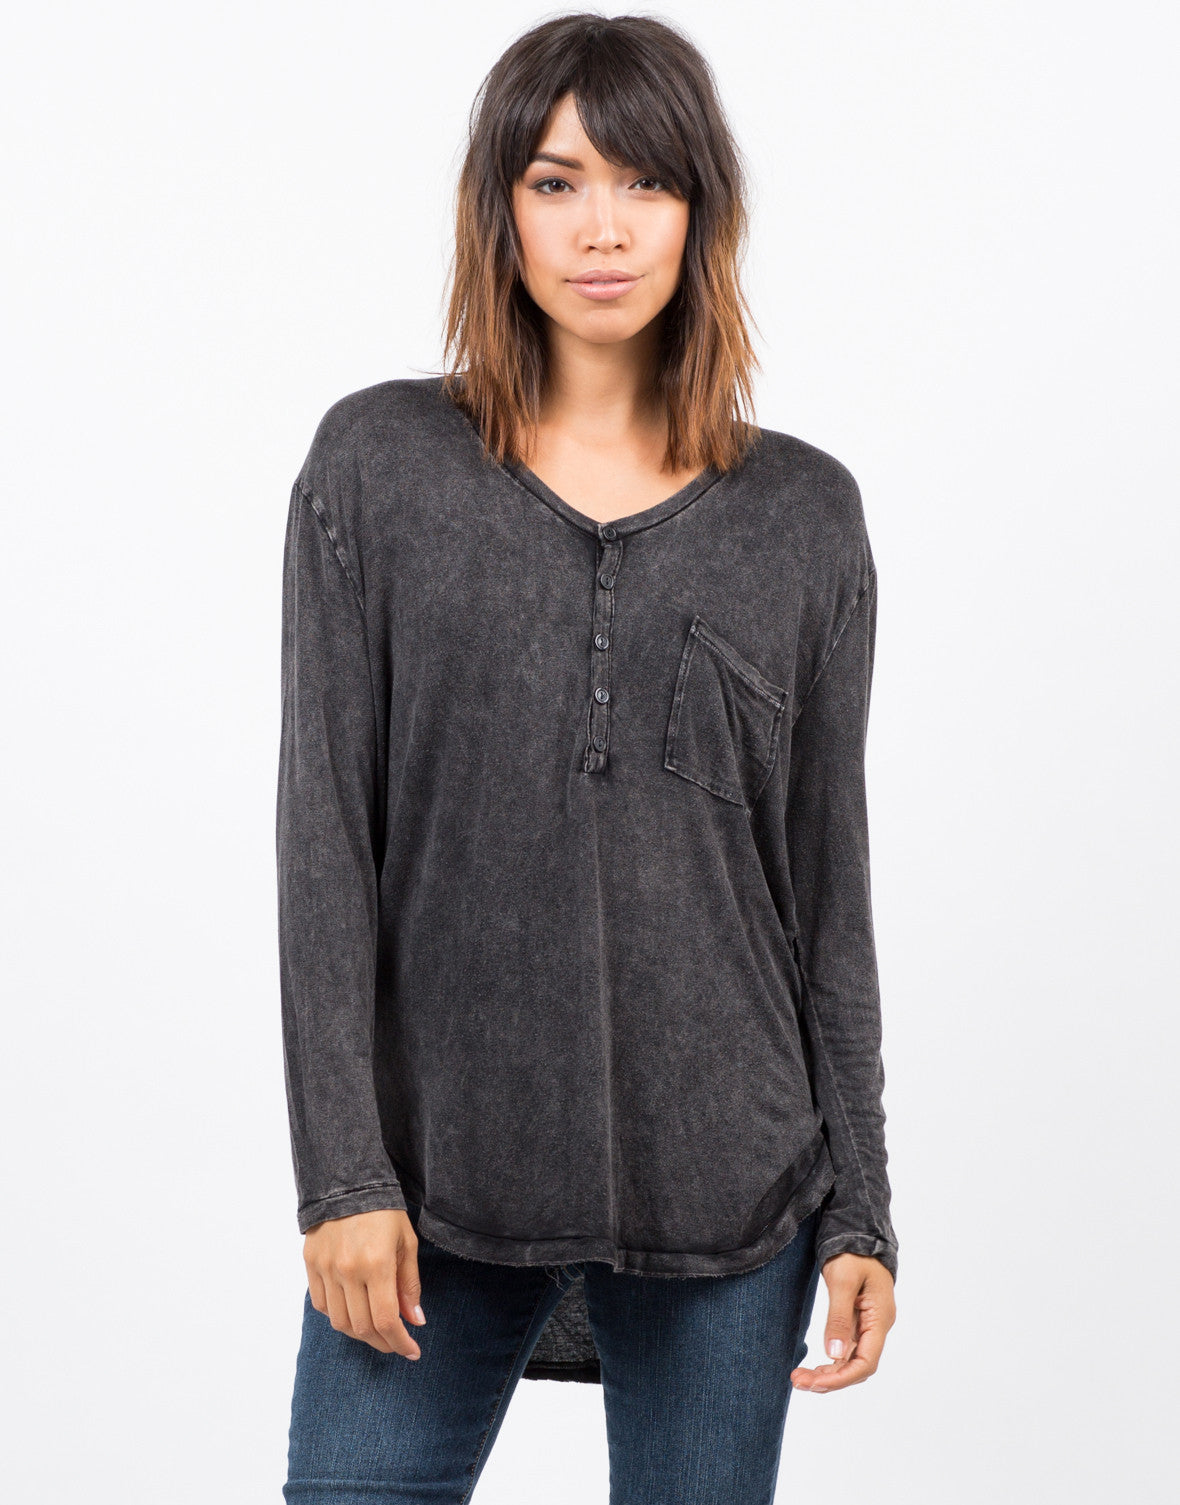 Front view of Basic Long Sleeve Pocket Top